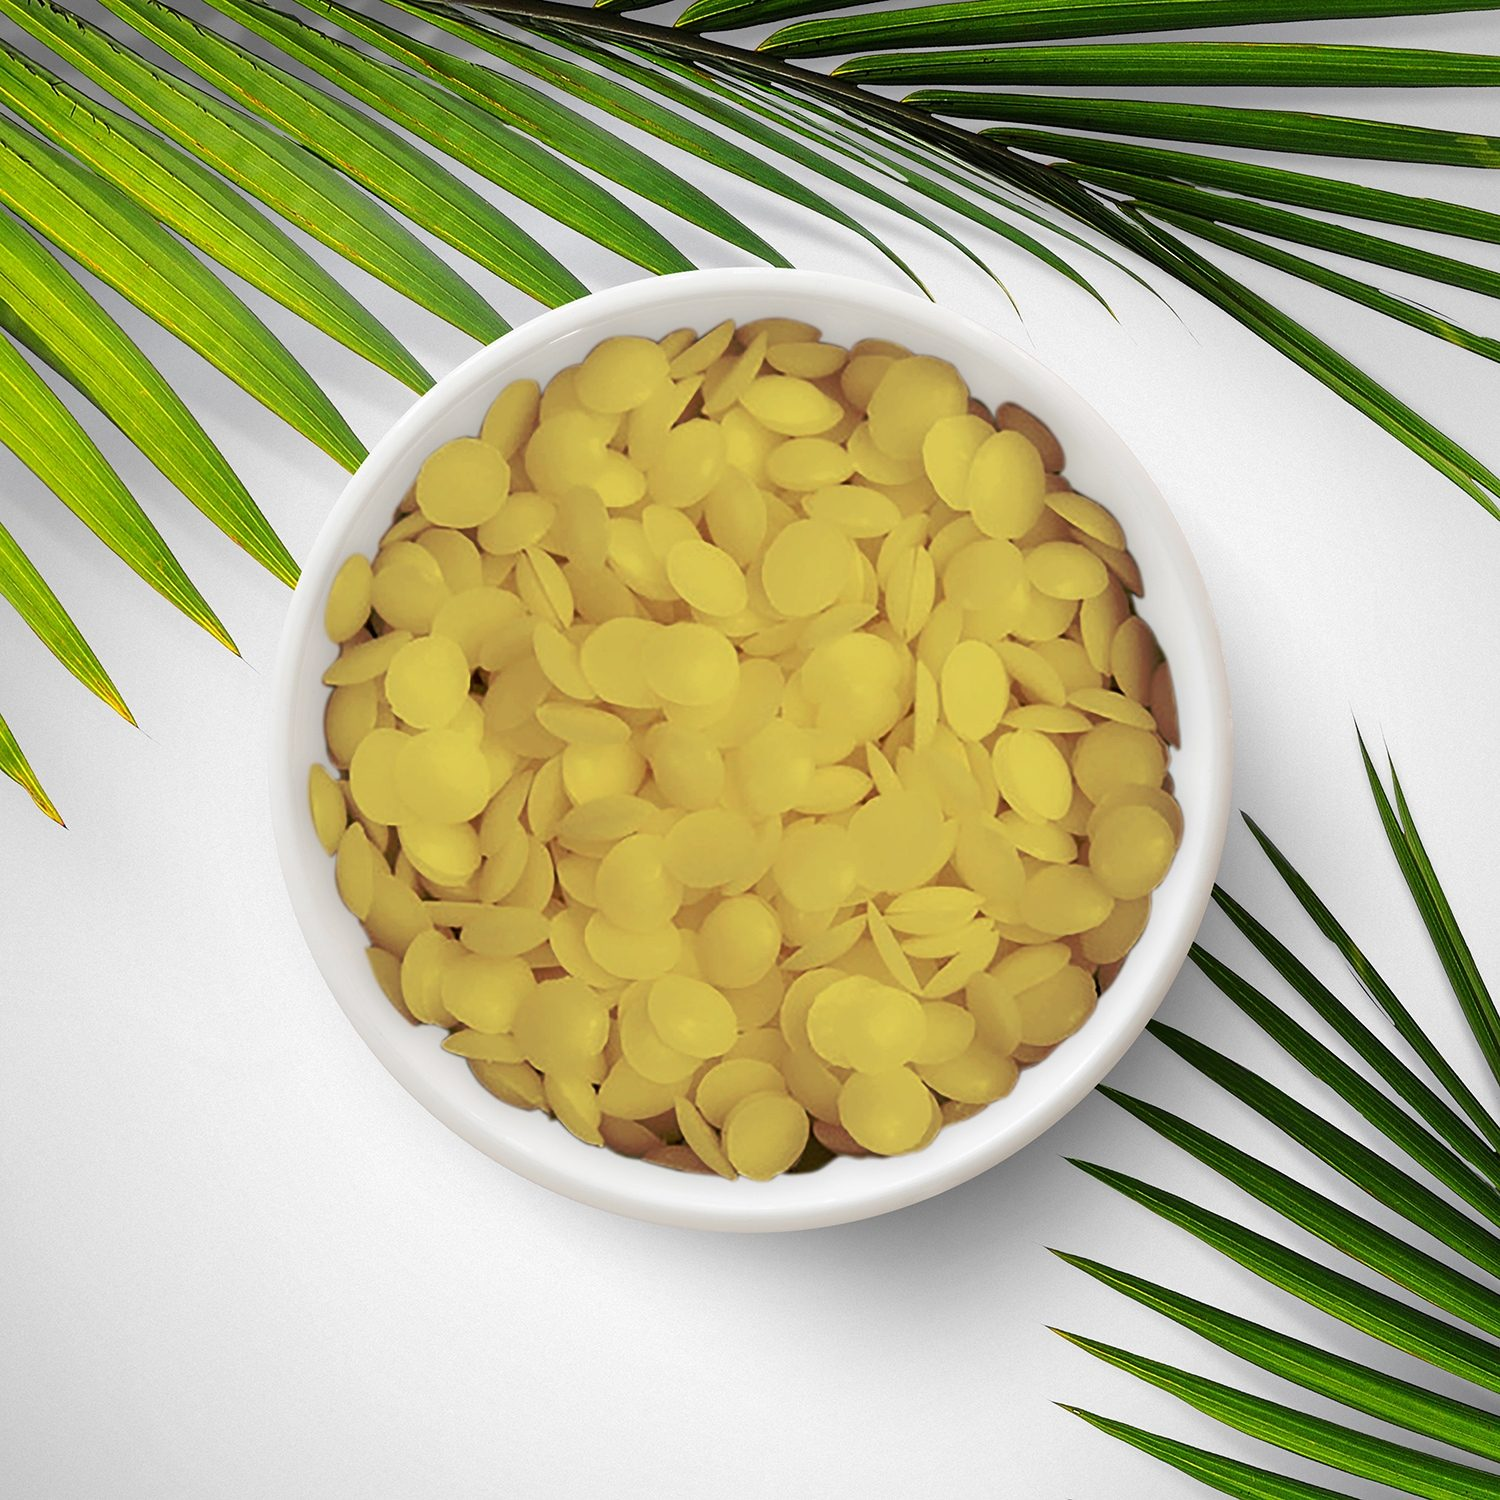 A small bowl of the filtrated wax pellets we stock, which are made from ageing palm leaves.